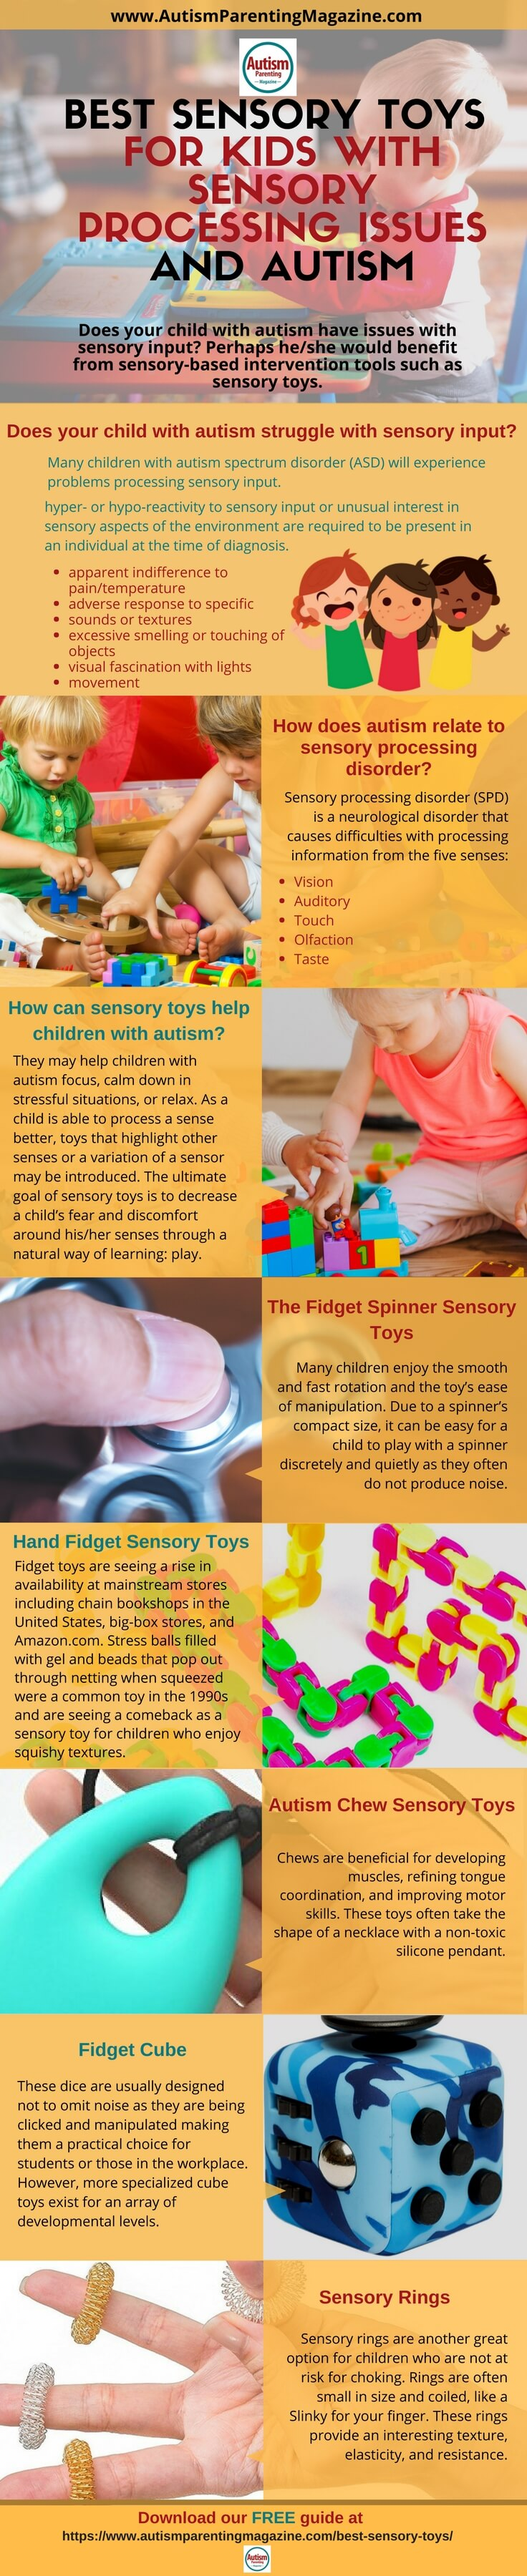 Download our Free Guide - Best Sensory Toys for Kids with Sensory Processing Issues and Autism